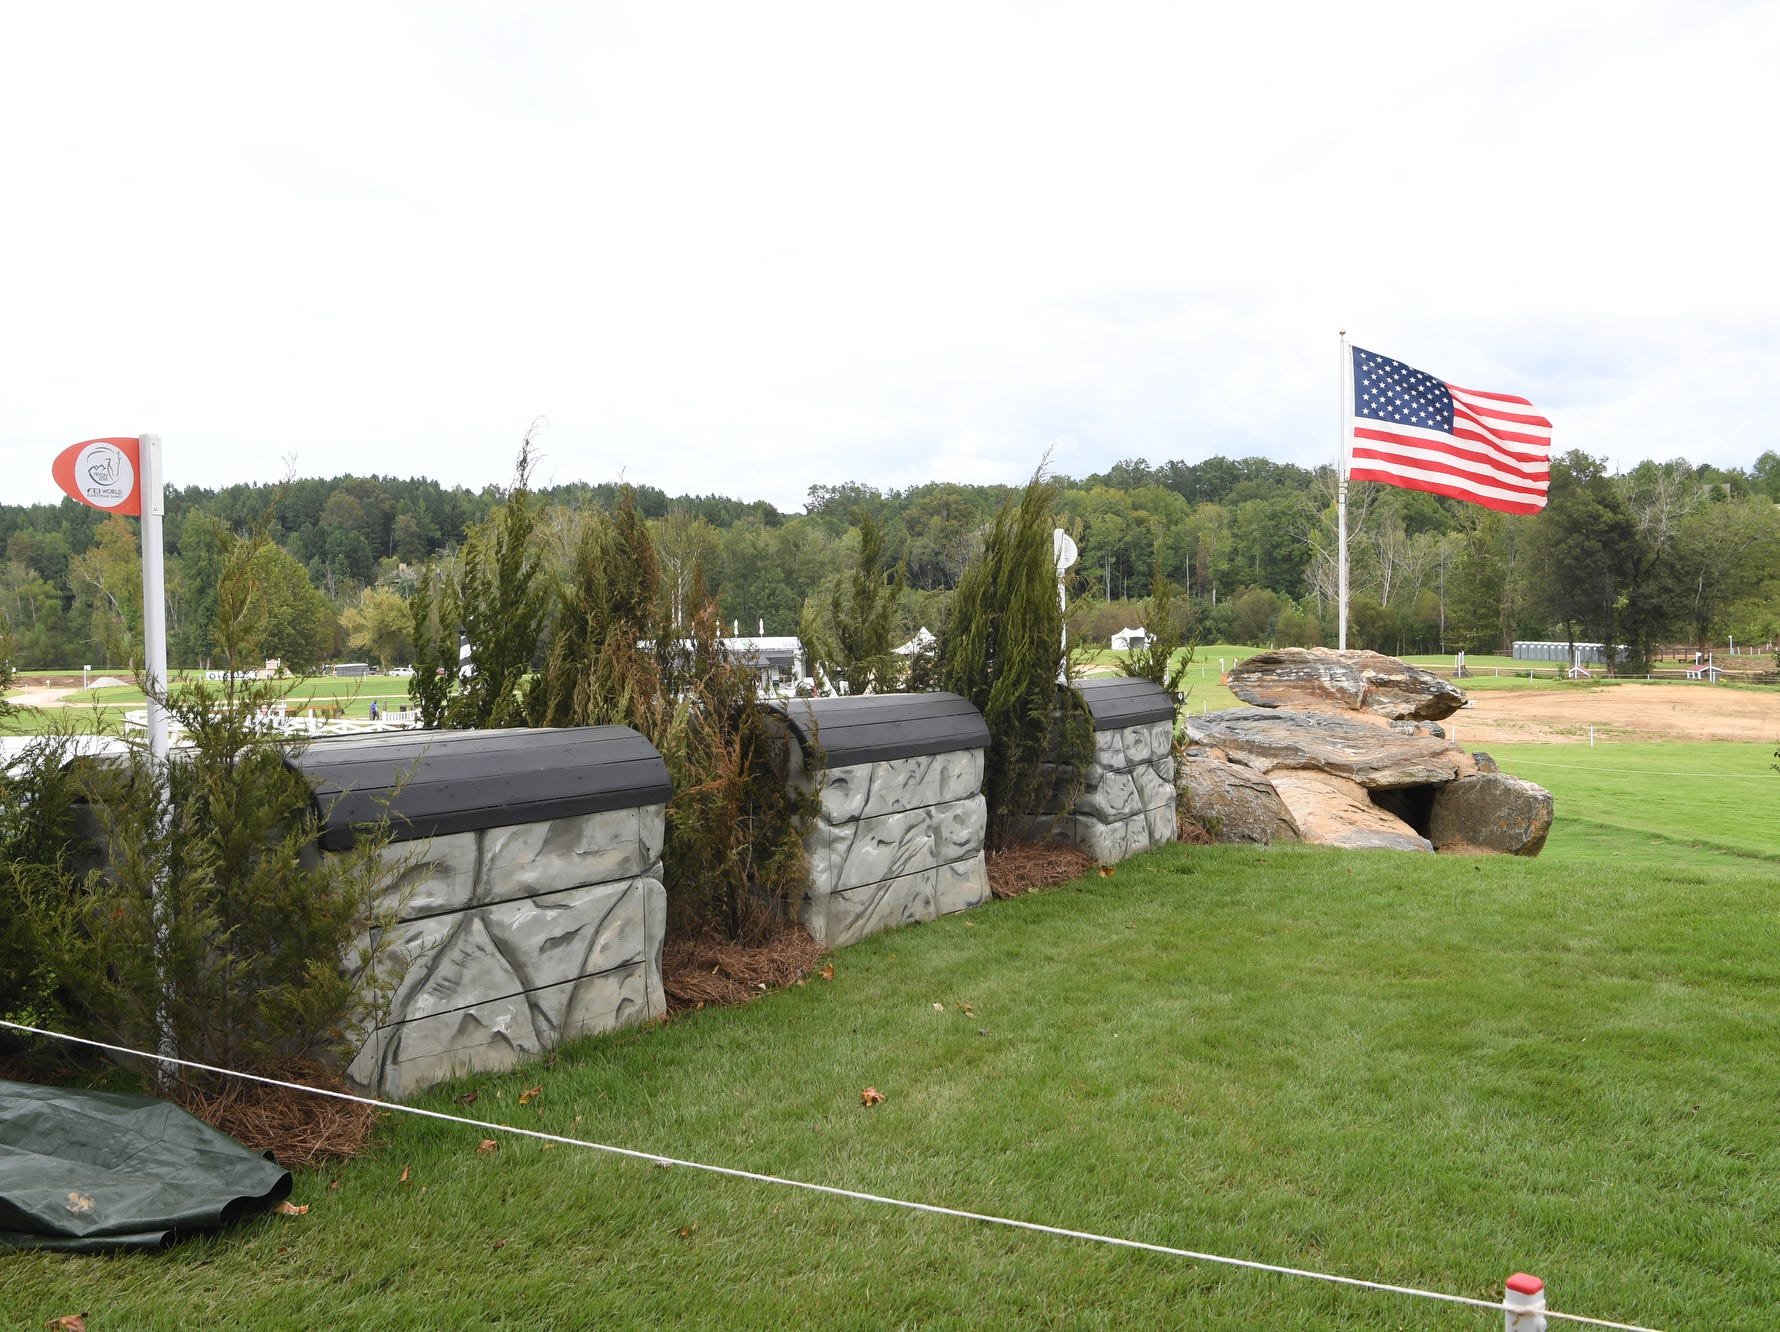 The cross country course at the World Equestrian Games in Tryon Sept. 14, 2018.